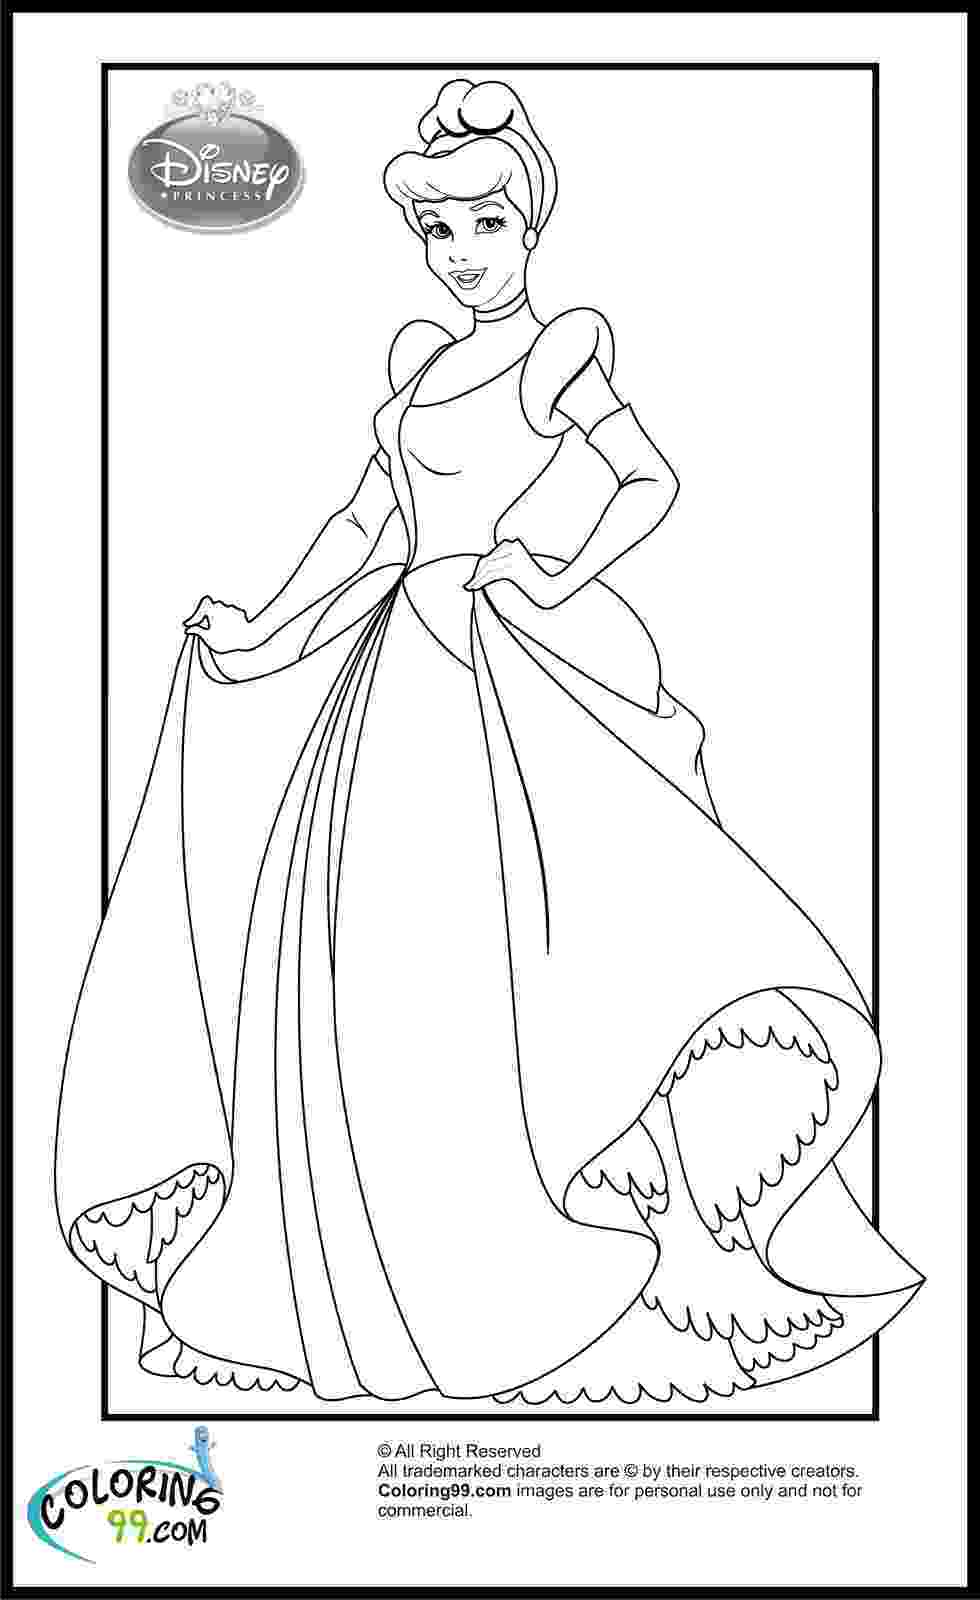 coloring pages princesses disney princess coloring pages minister coloring coloring princesses pages 1 1